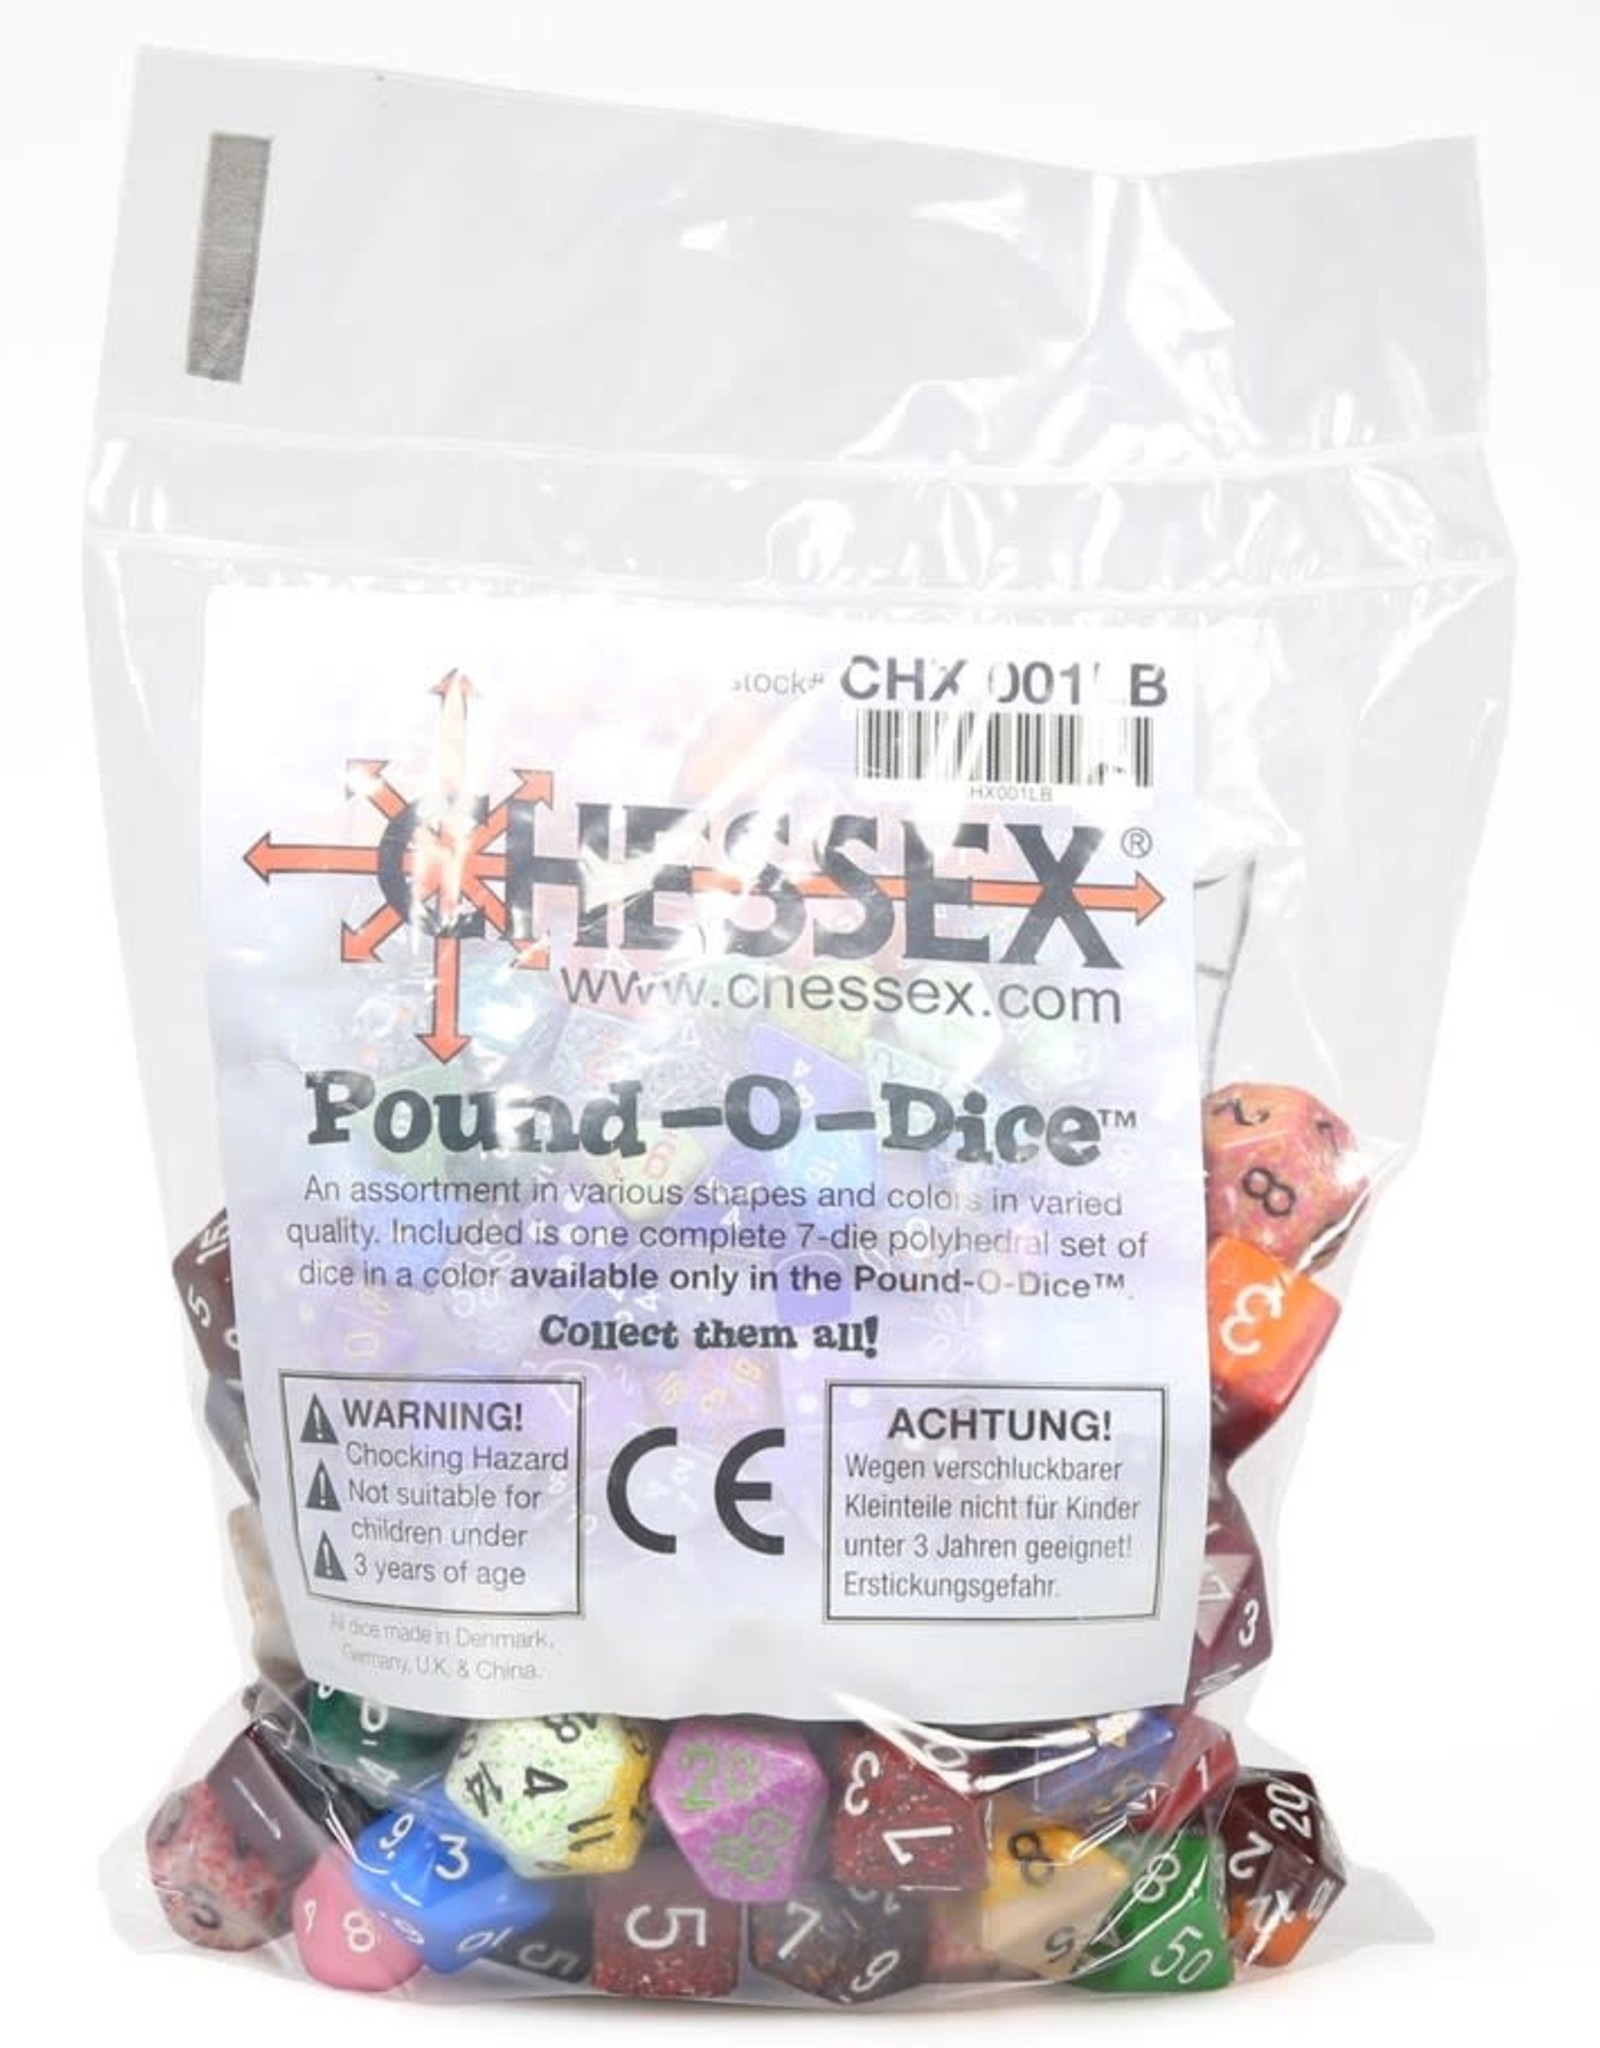 Chessex Pound of Dice: Various Opaque Dice (approx 100)